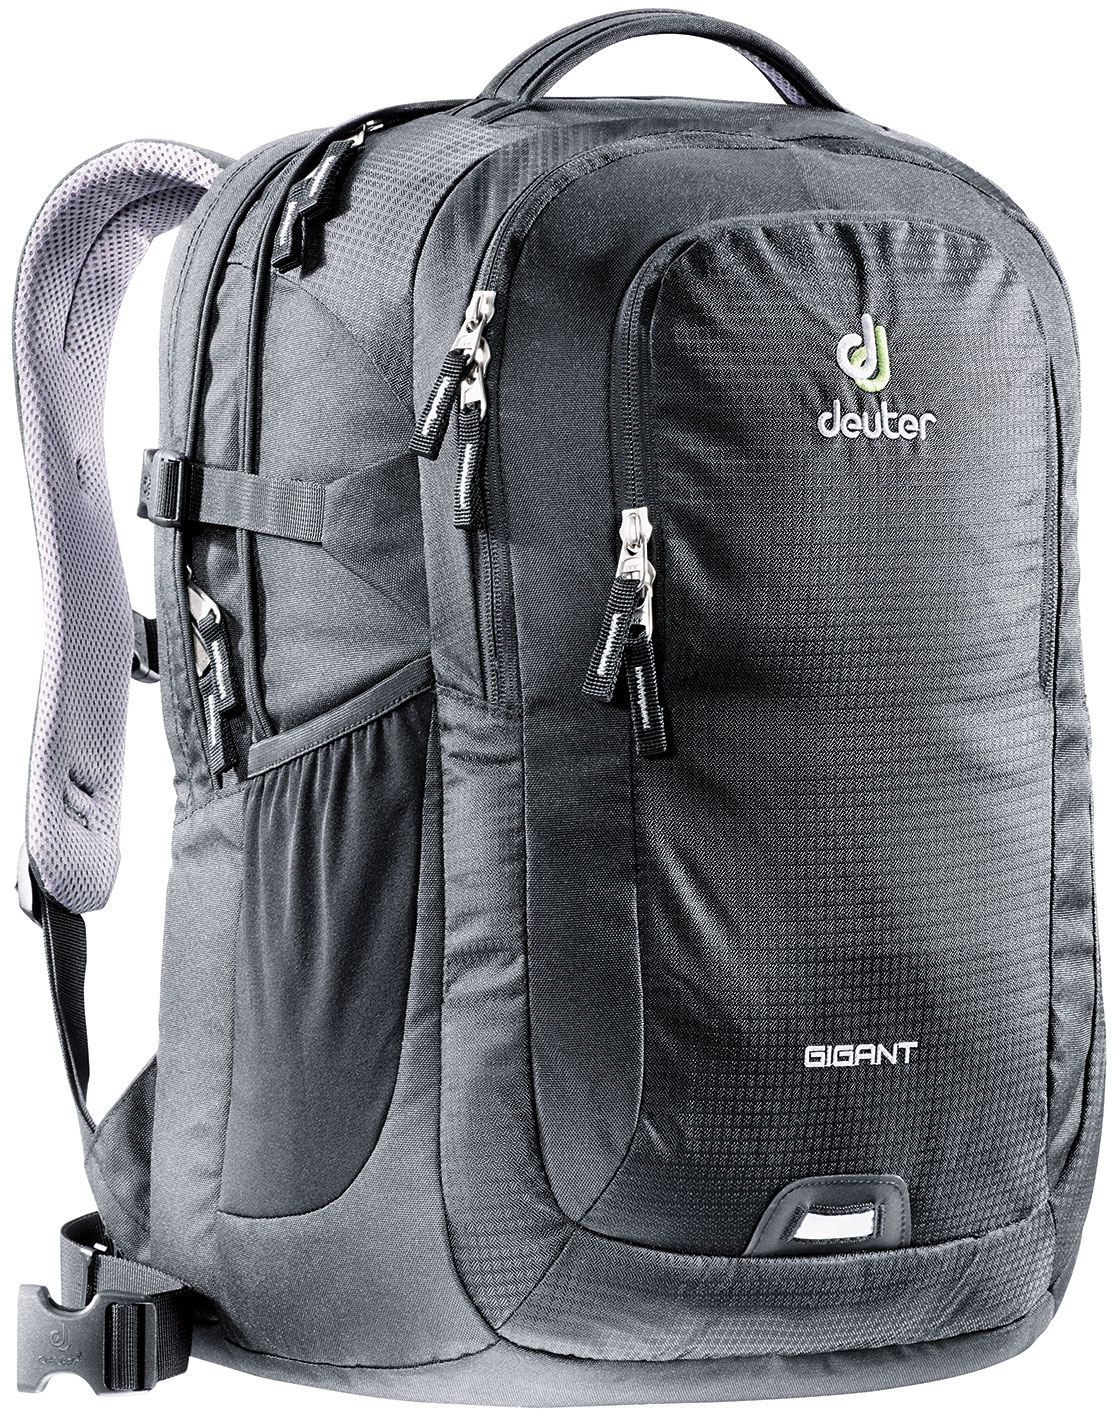 Deuter Gigant black-30